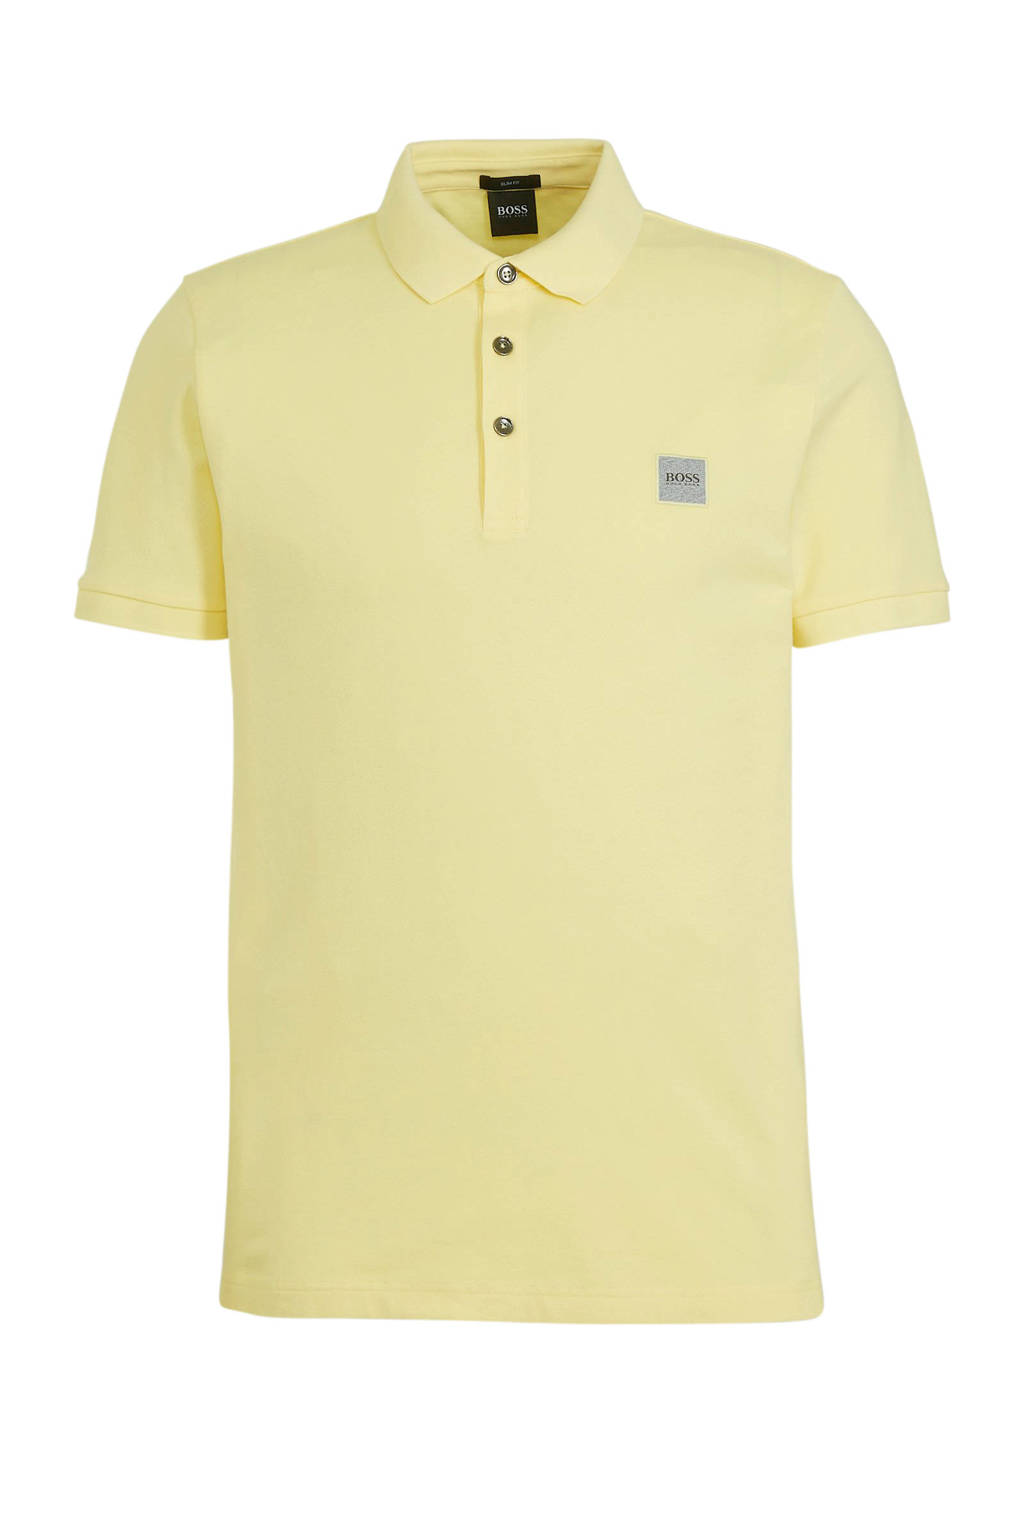 BOSS Casual slim fit polo Passenger pastel yellow, Pastel Yellow